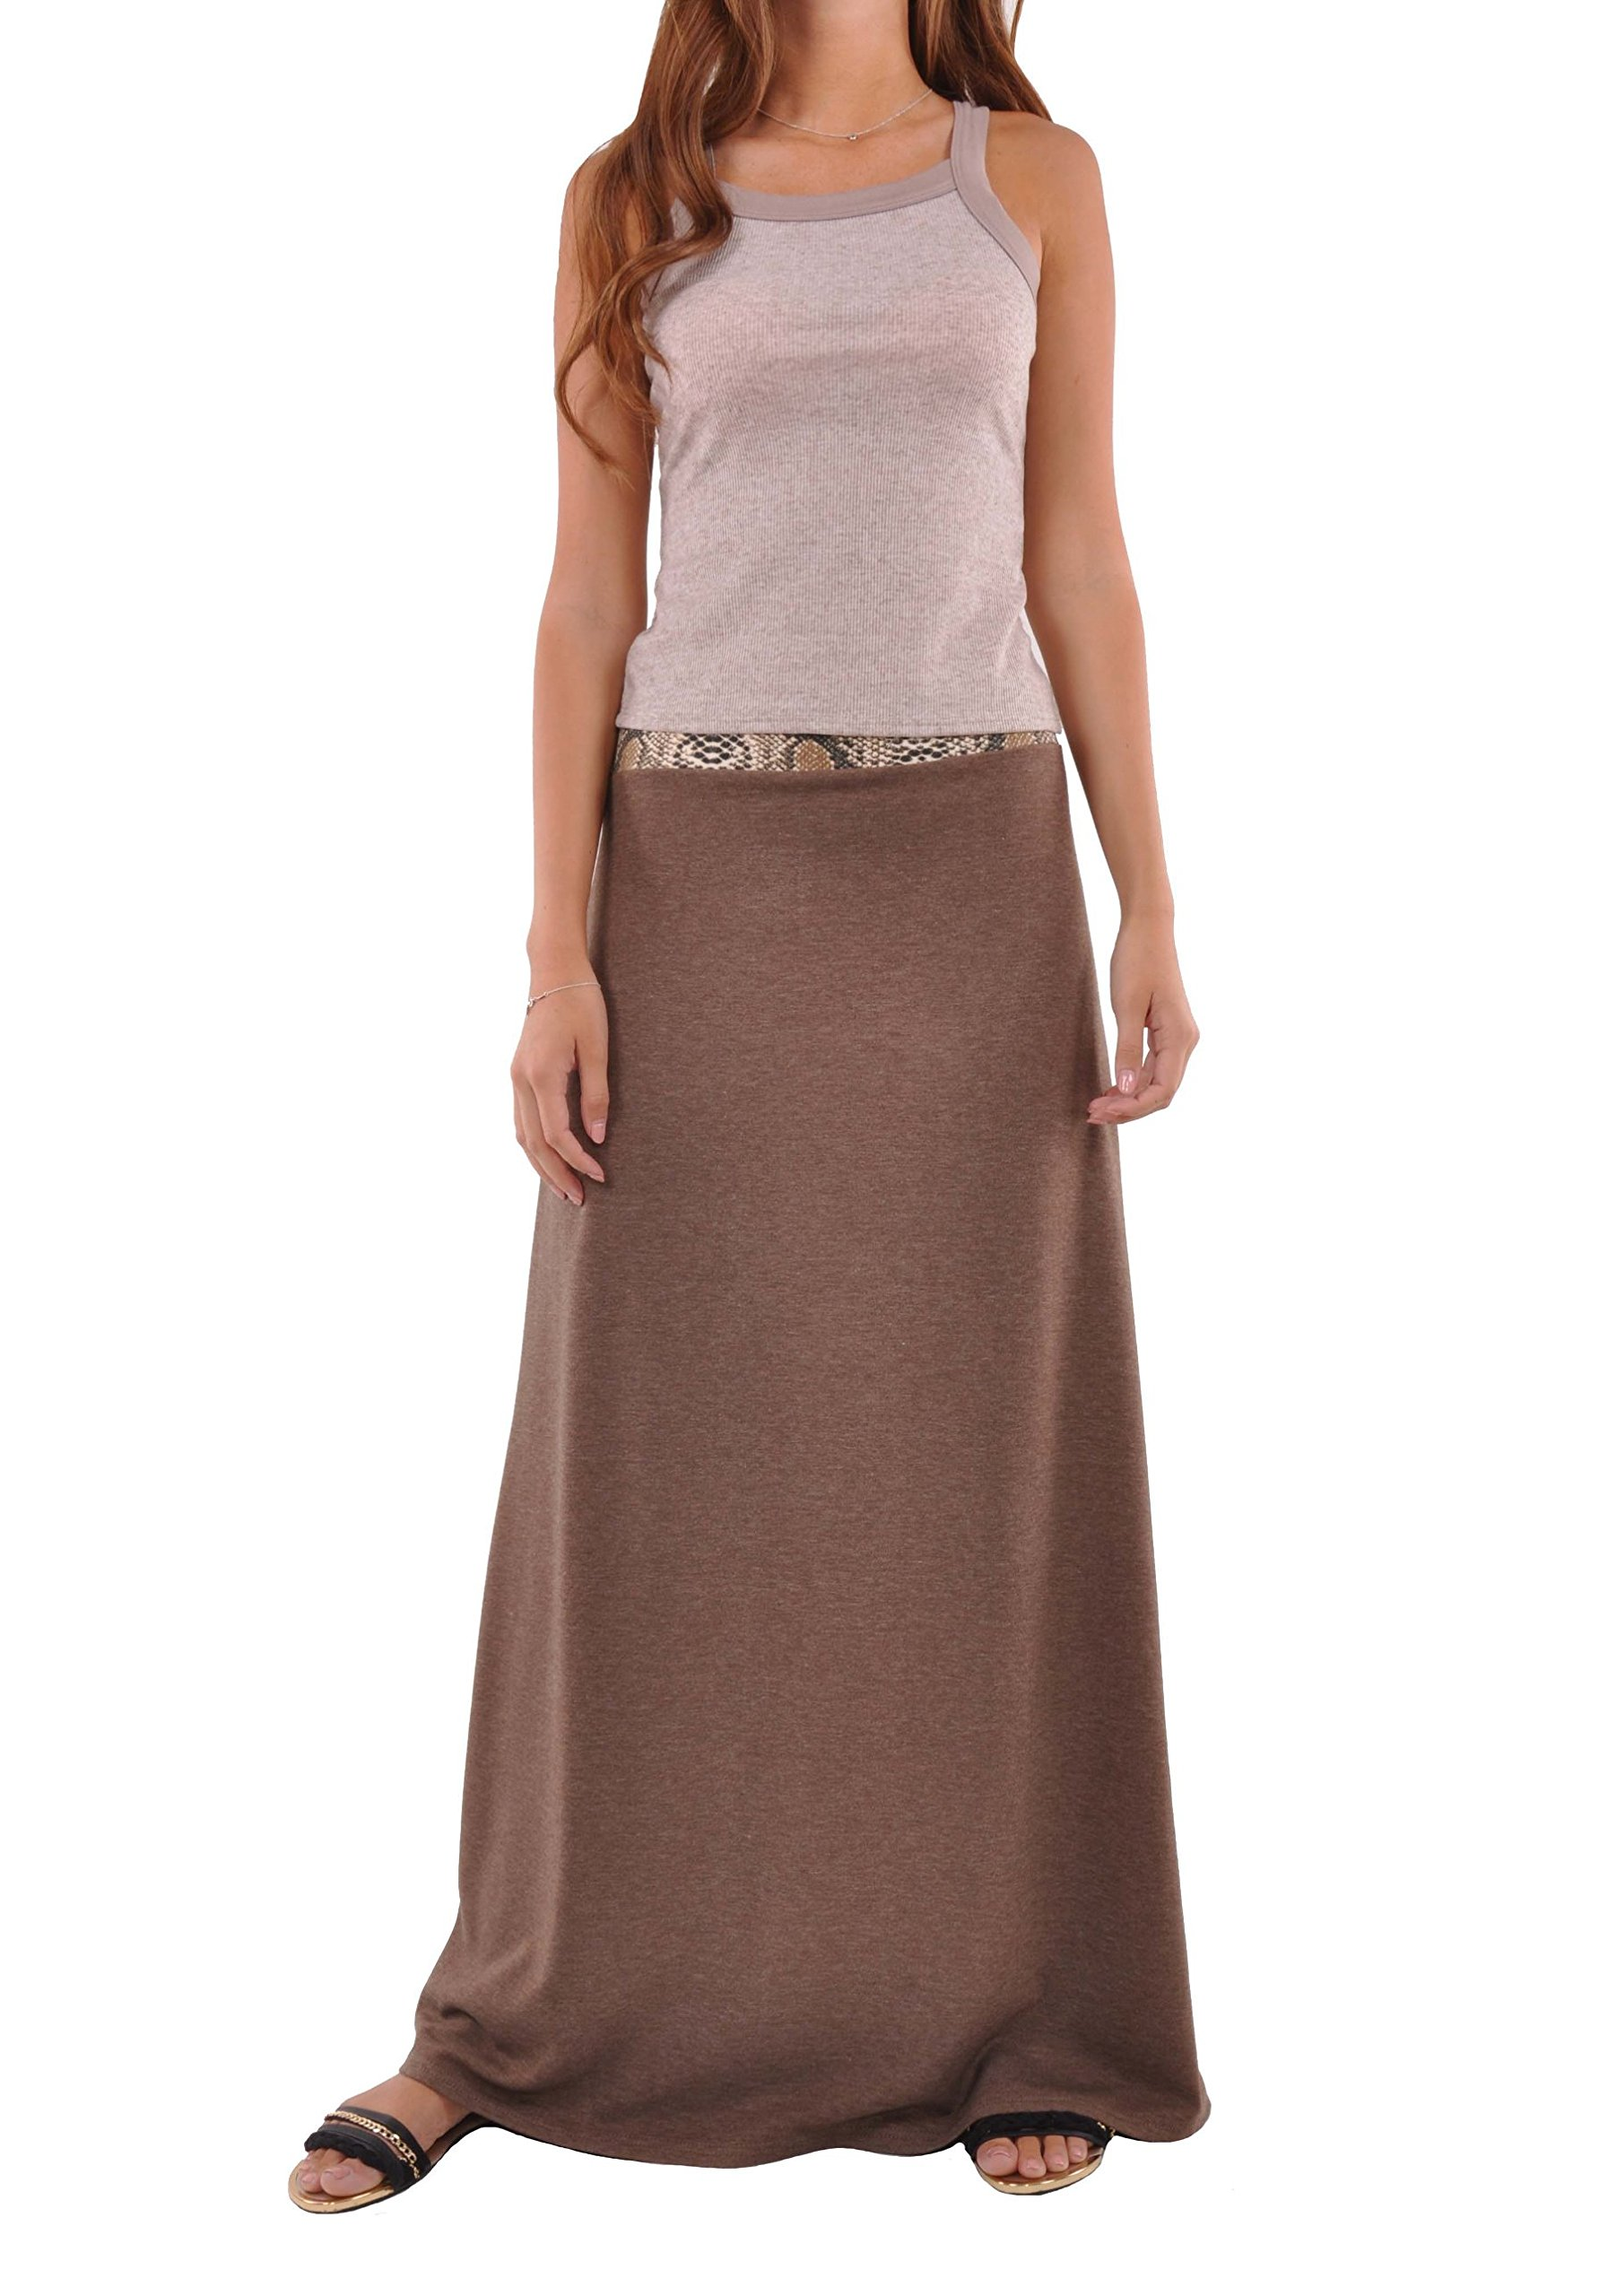 Style J Jersey Brown Maxi Skirt-Brown-32(12)